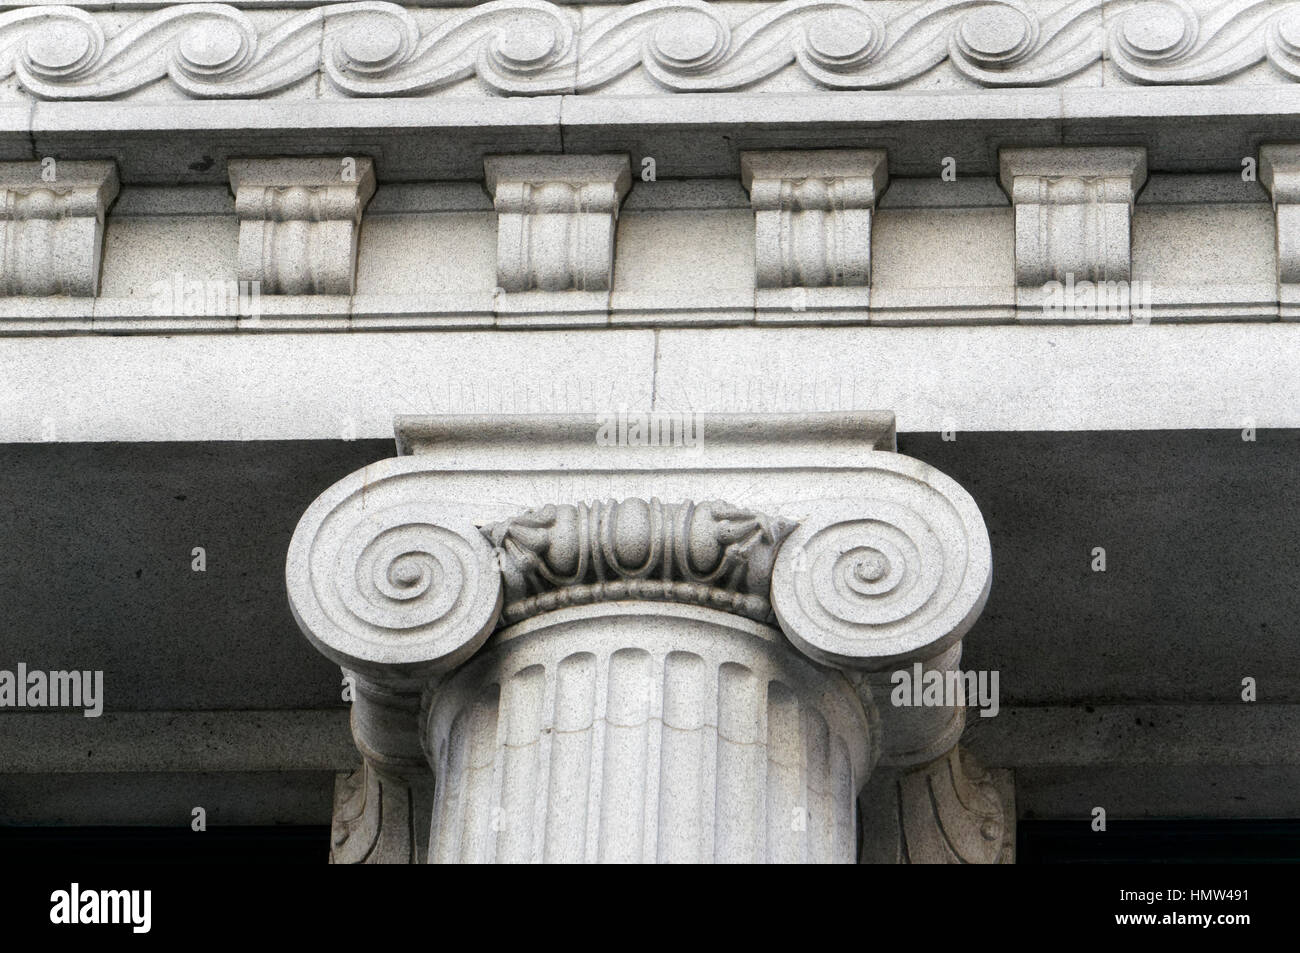 Detail of Ionic column capital and cornice of the Birks Building in downtown  Vancouver, British Columbia, Canada - Stock Image